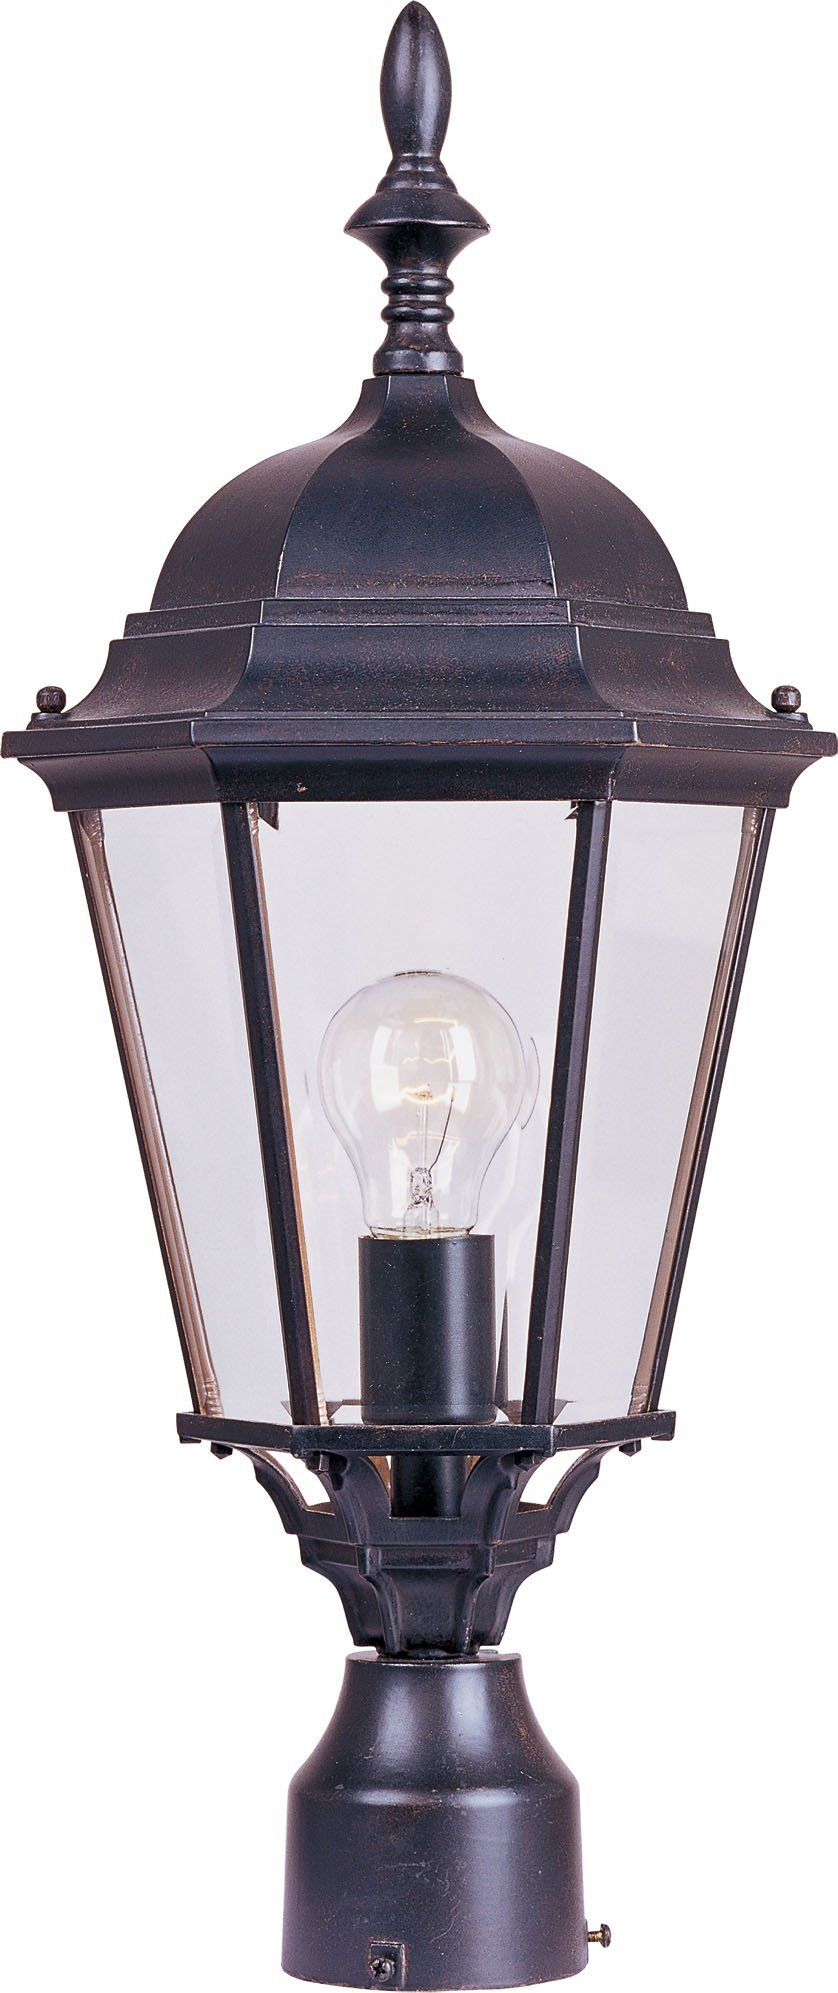 Maxim 1005EB, Westlake Cast,1-Light Outdoor Pole/Post Lantern, Empire Bronze